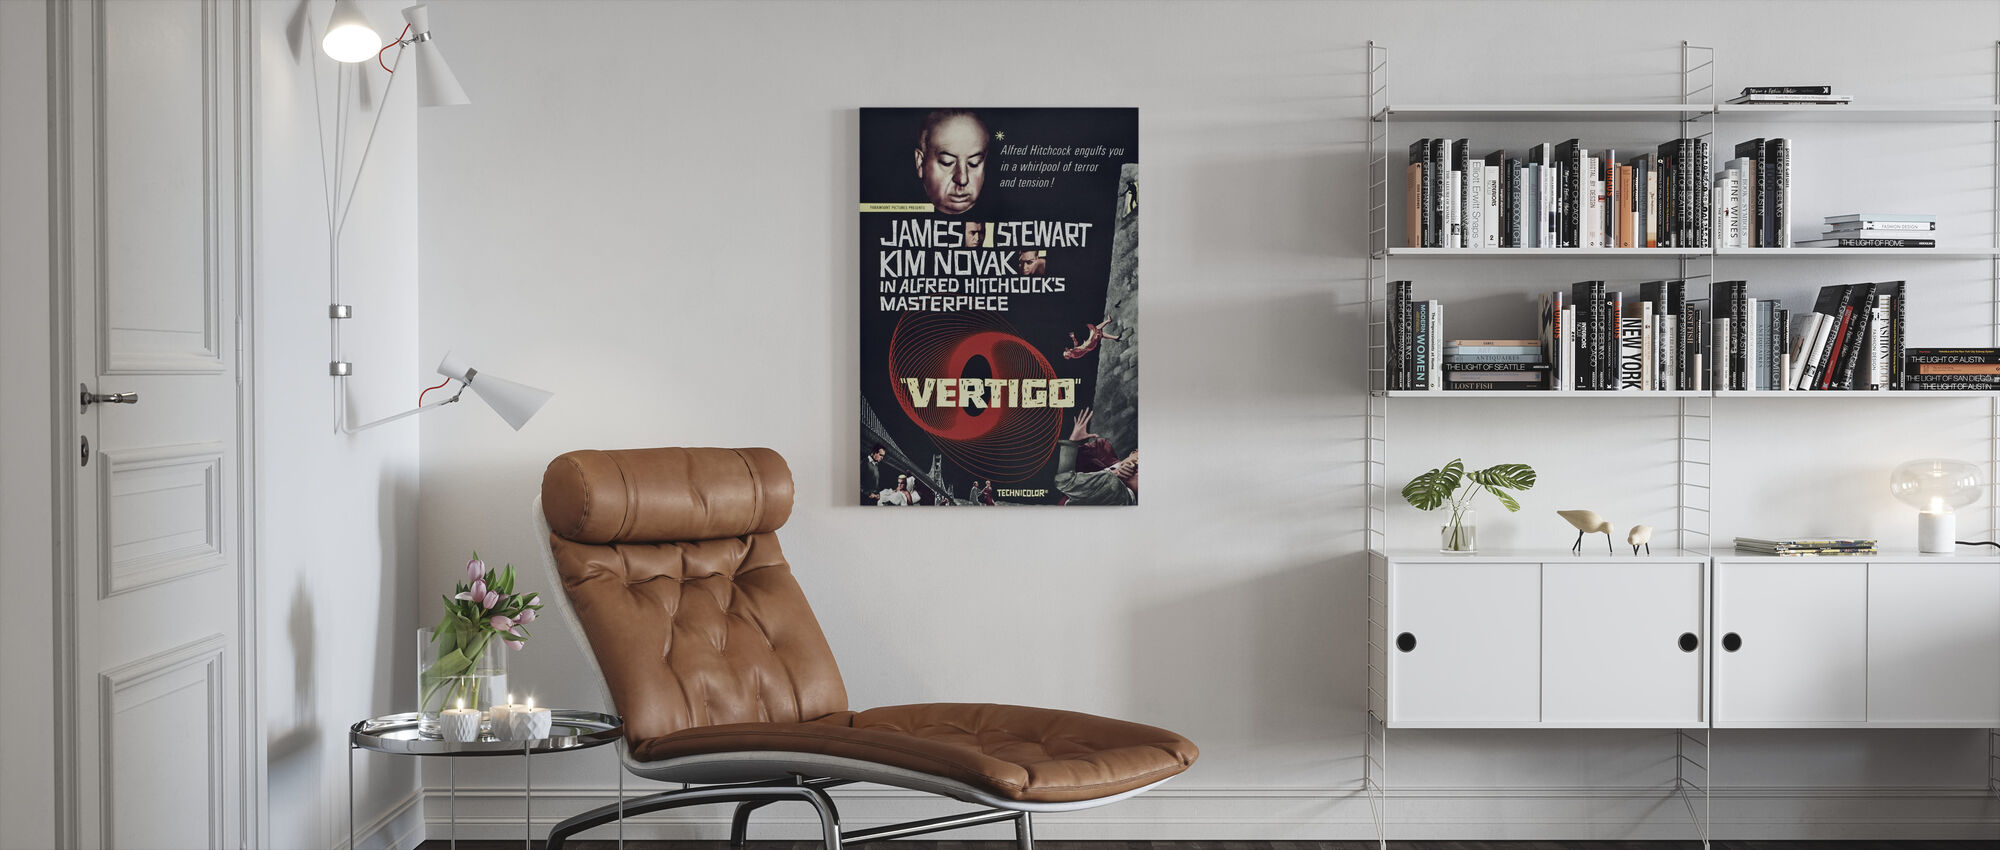 Vertigo - Canvas print - Living Room